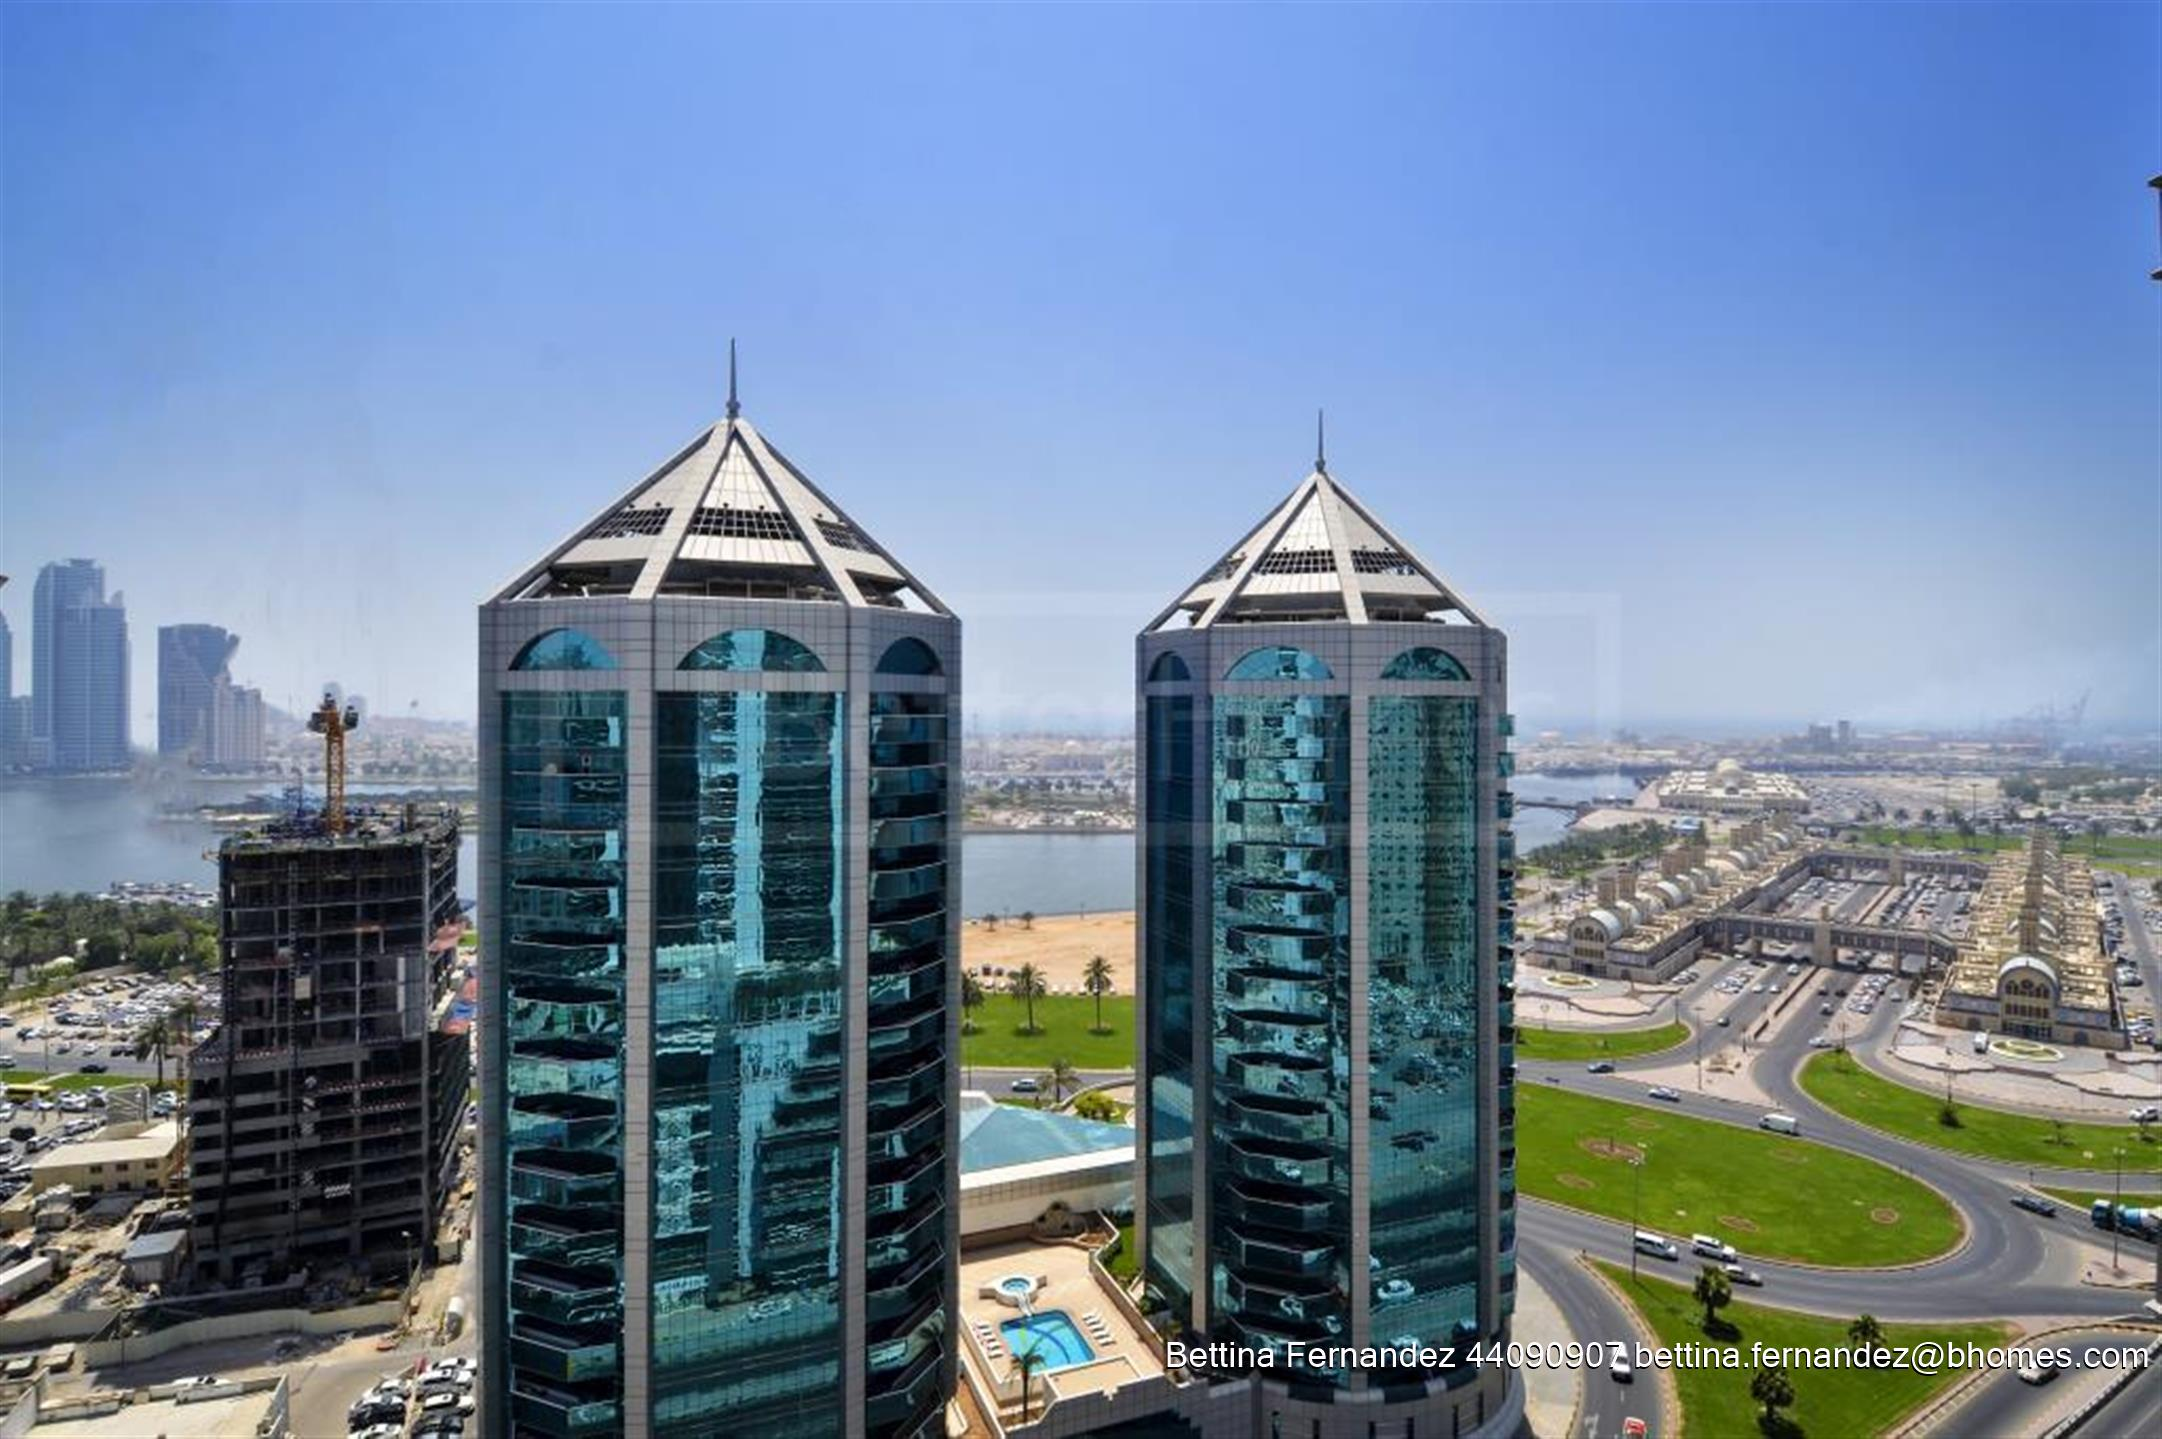 Al Marzouqi Towers are architectural landmark